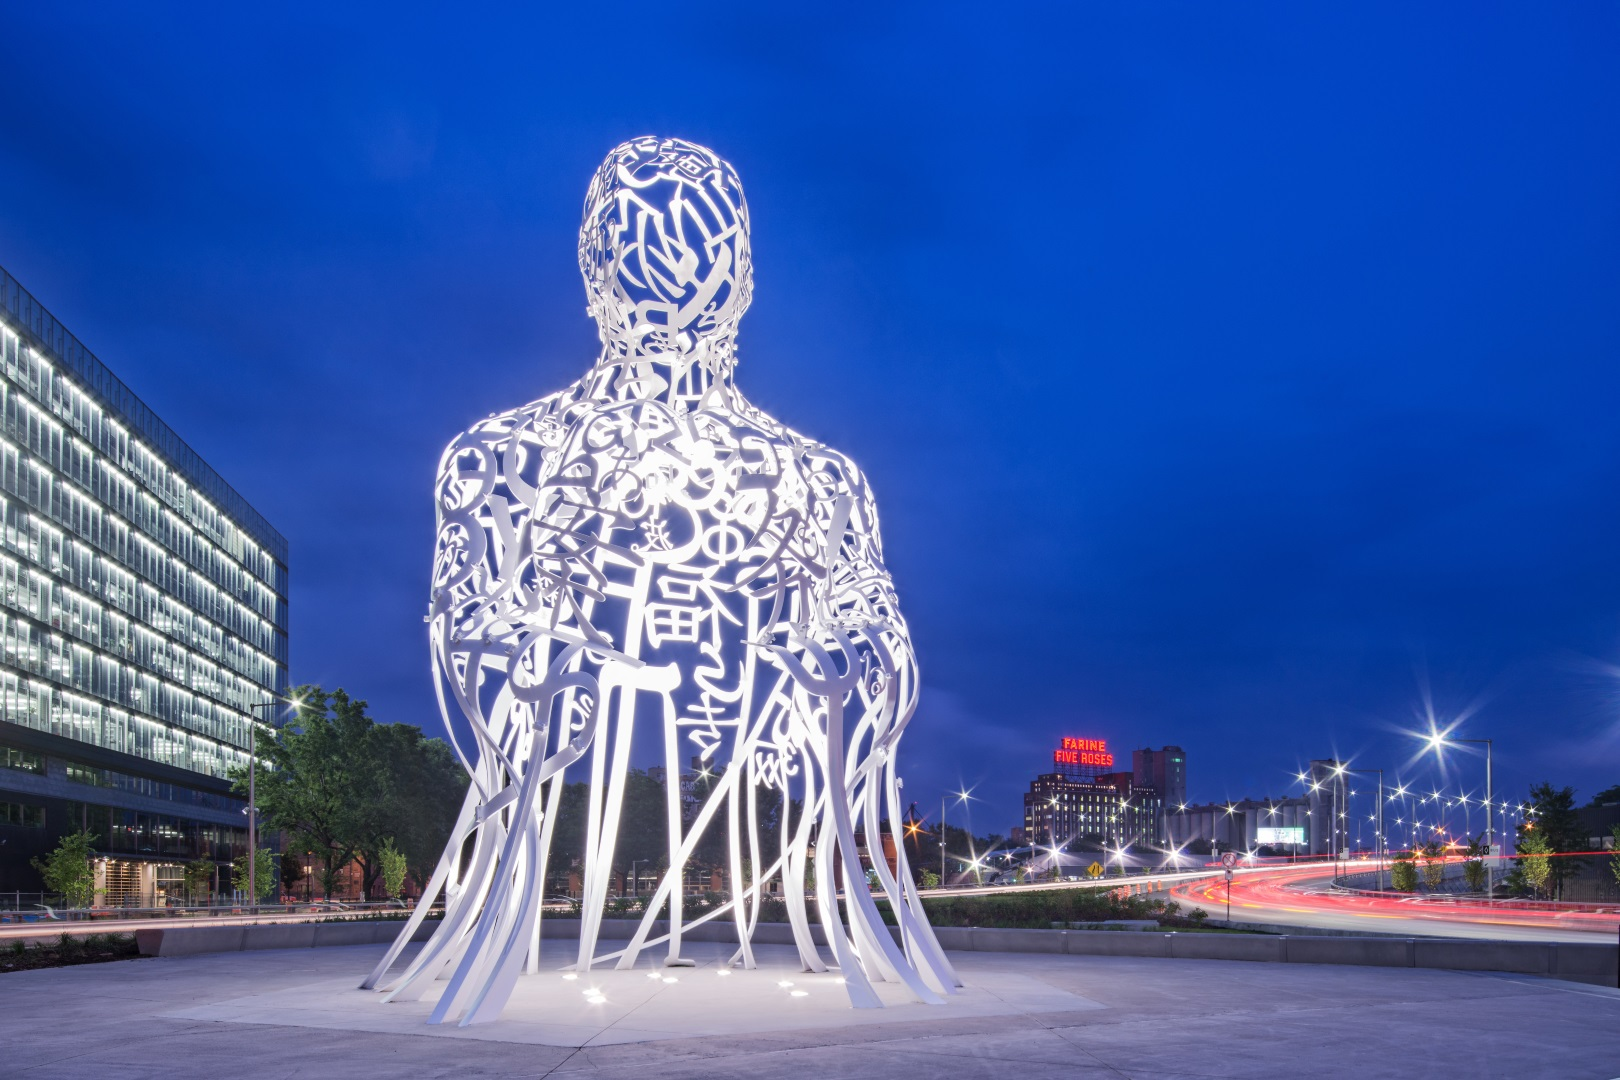 Source, Jaume Plensa